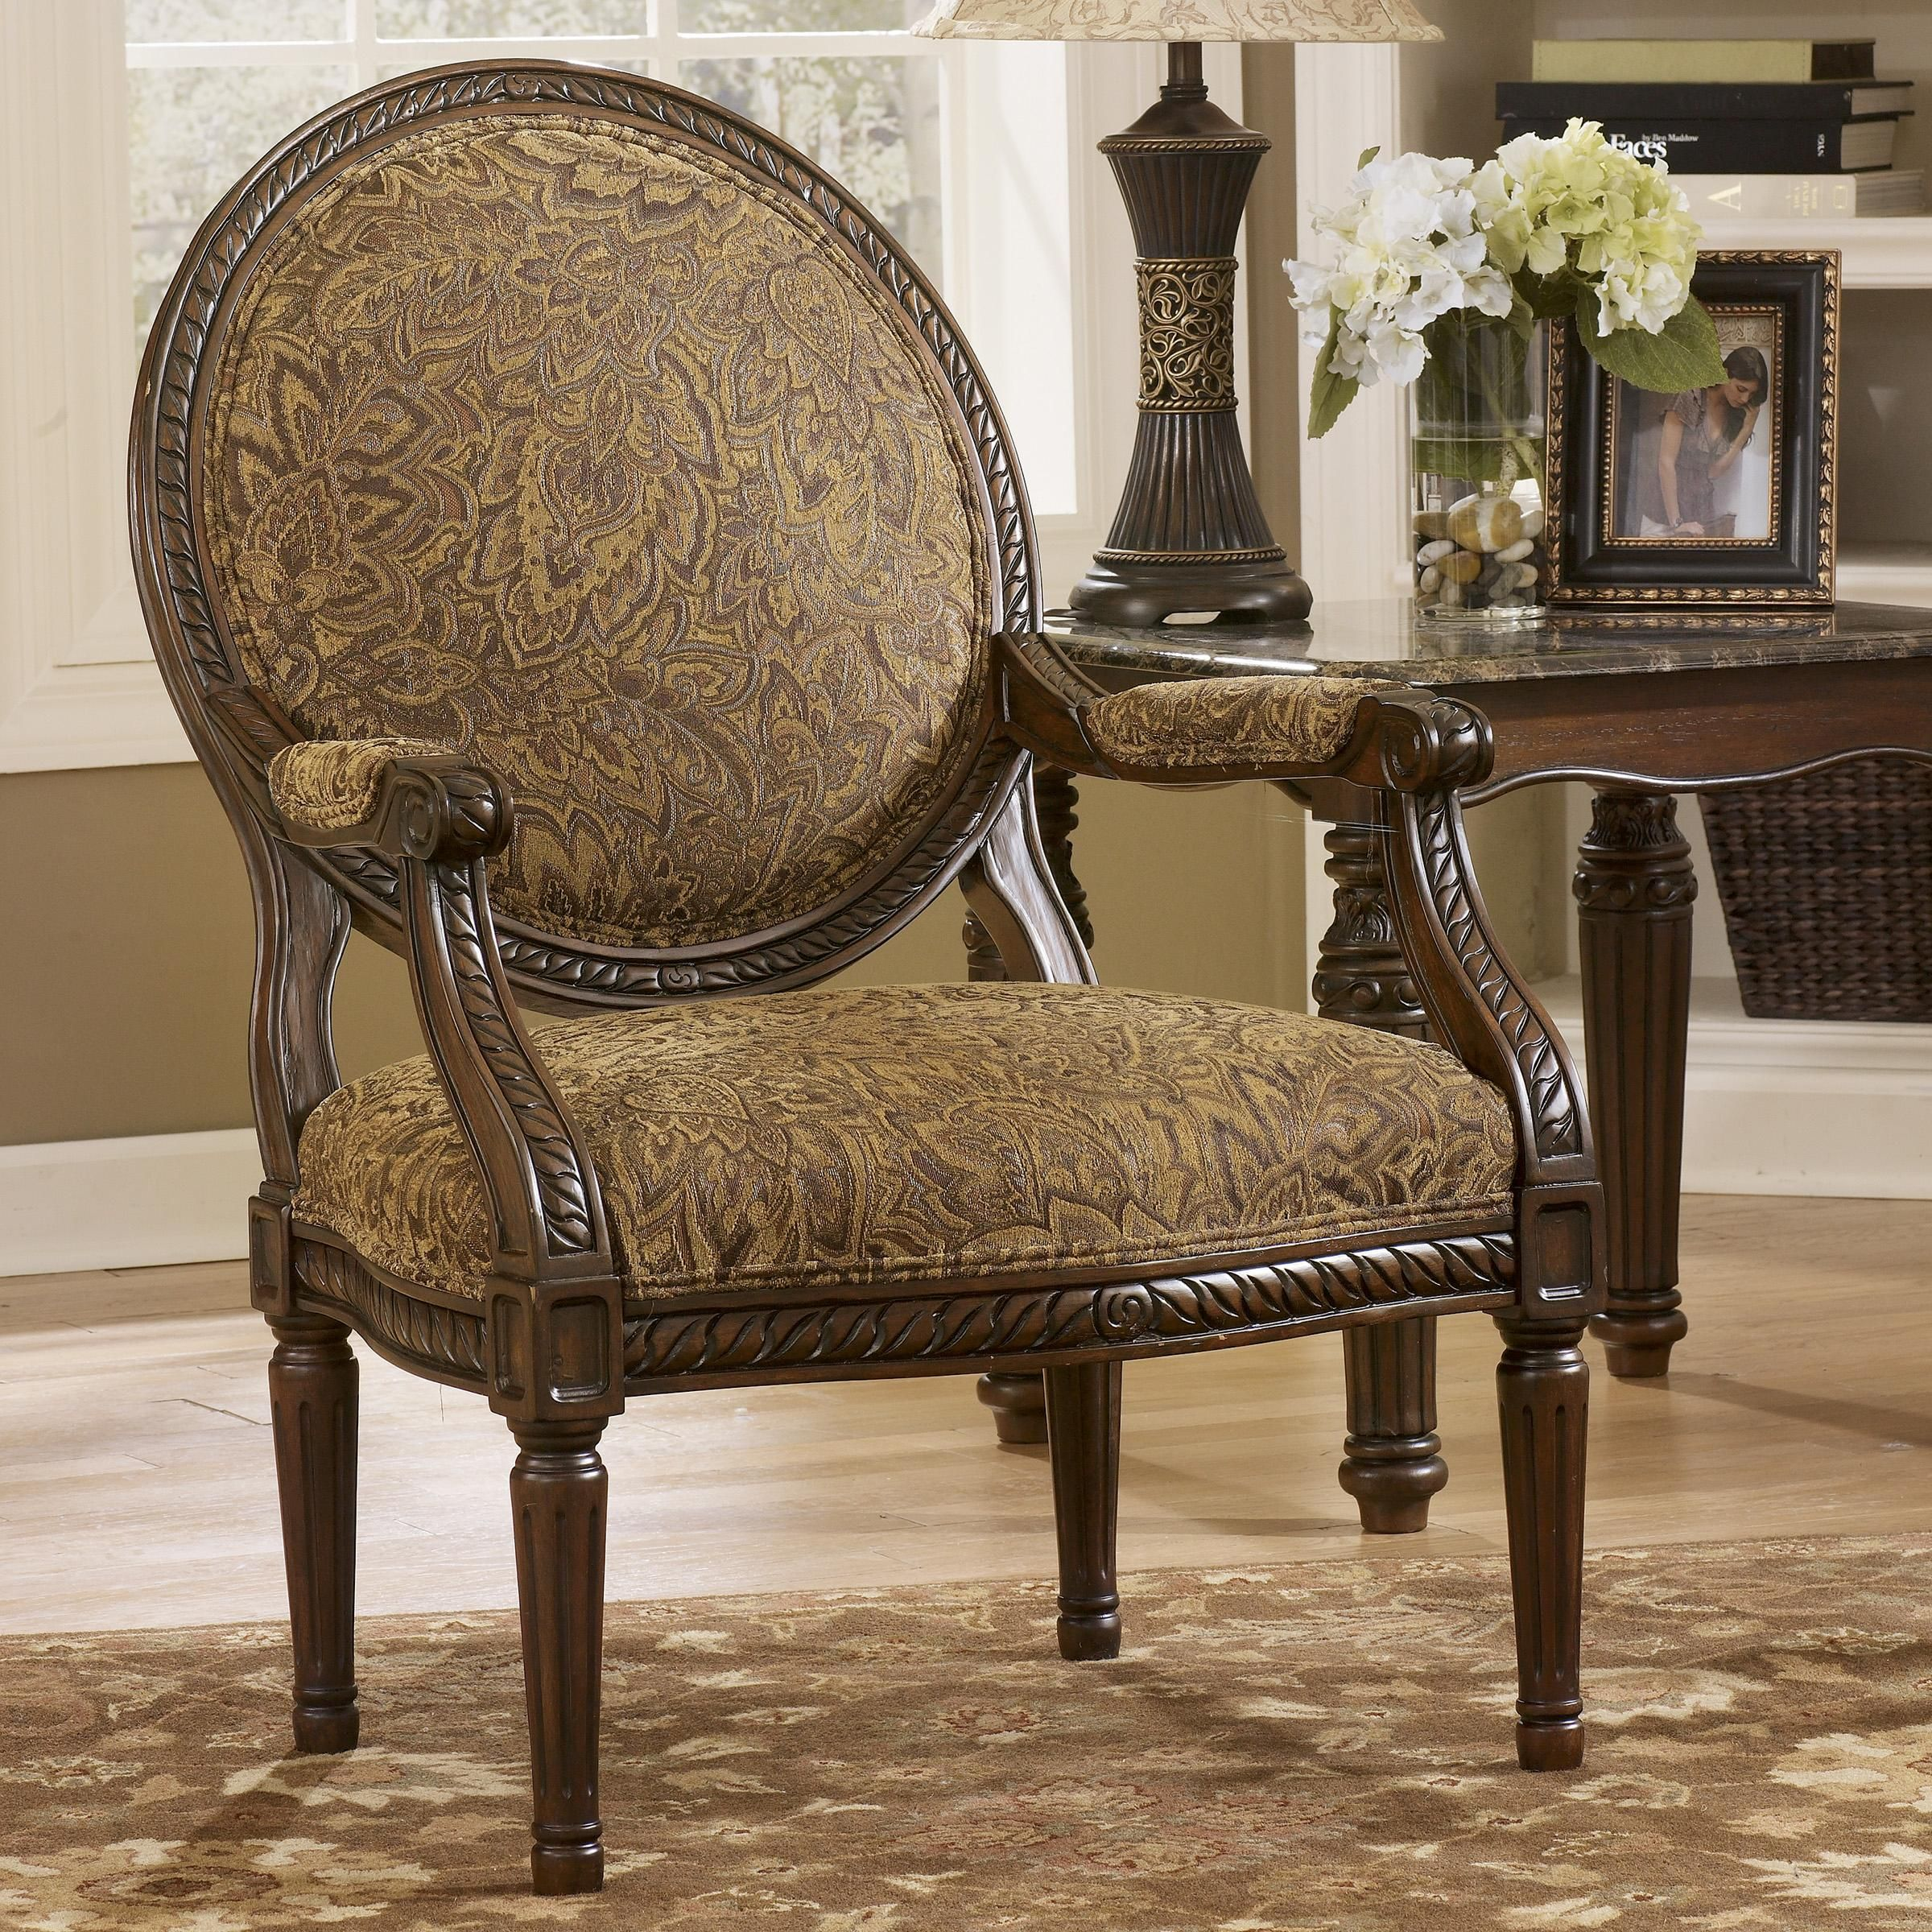 Snugglers Furniture Kitchener Cambridge Amber Traditional Exposed Wood Accent Chair By